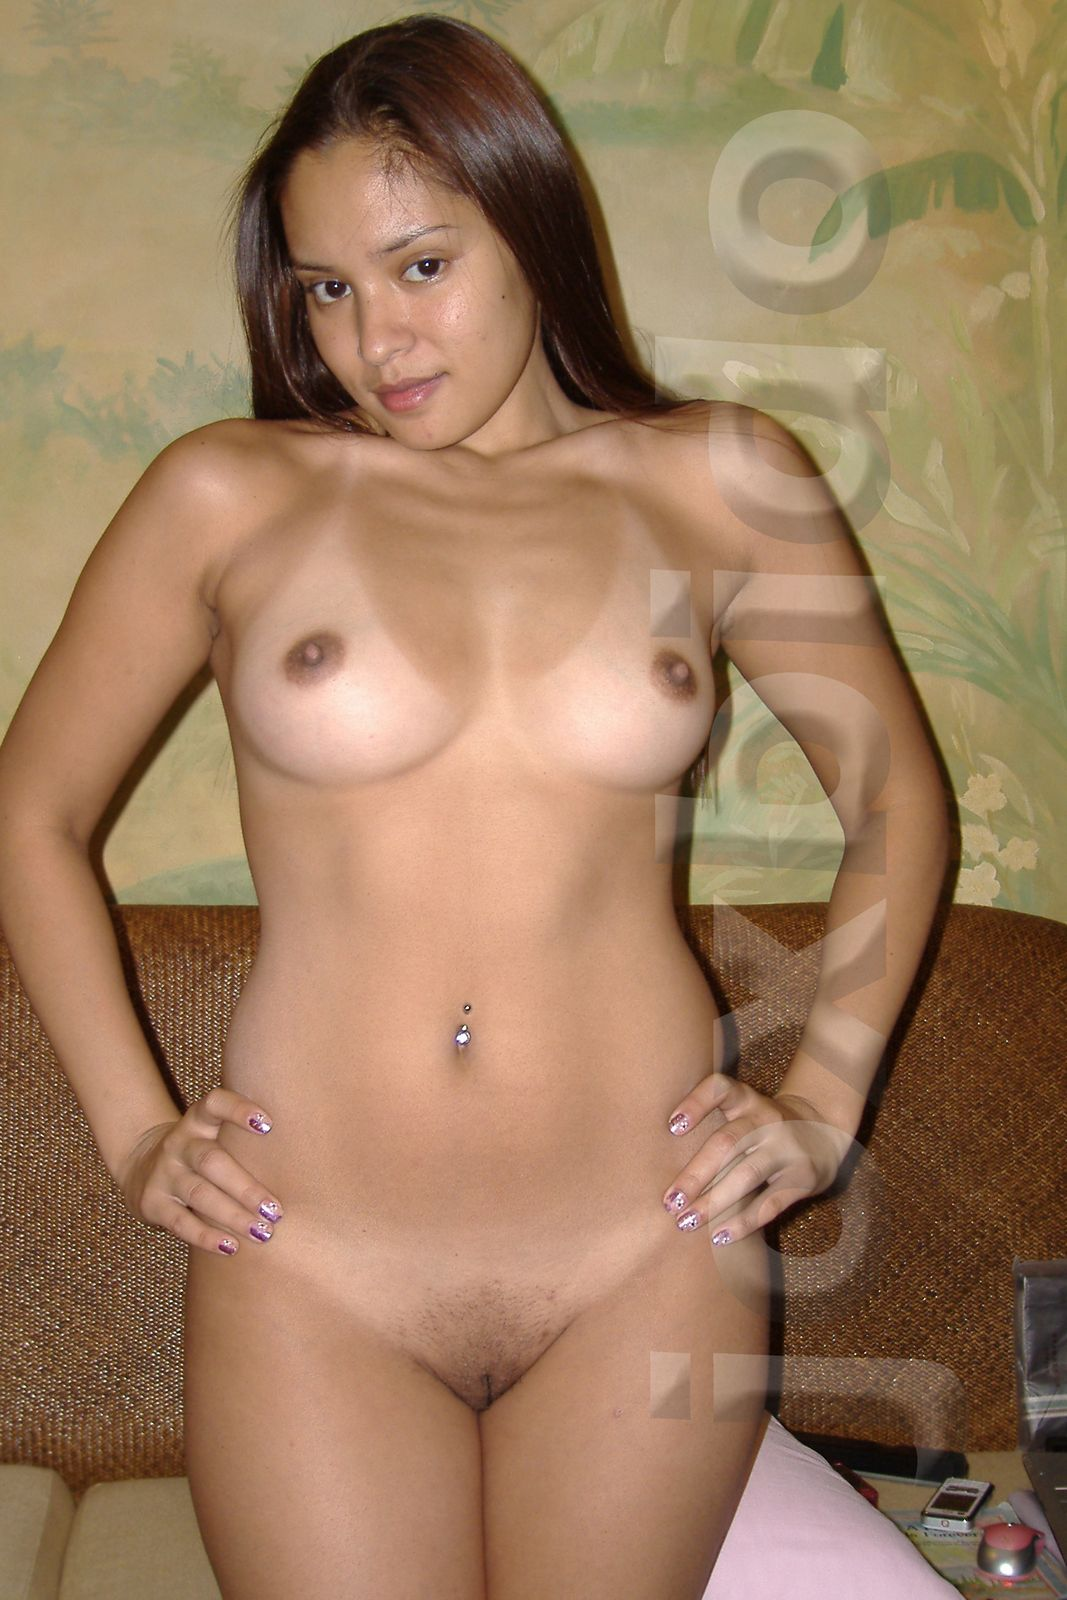 filipina actress nude pic